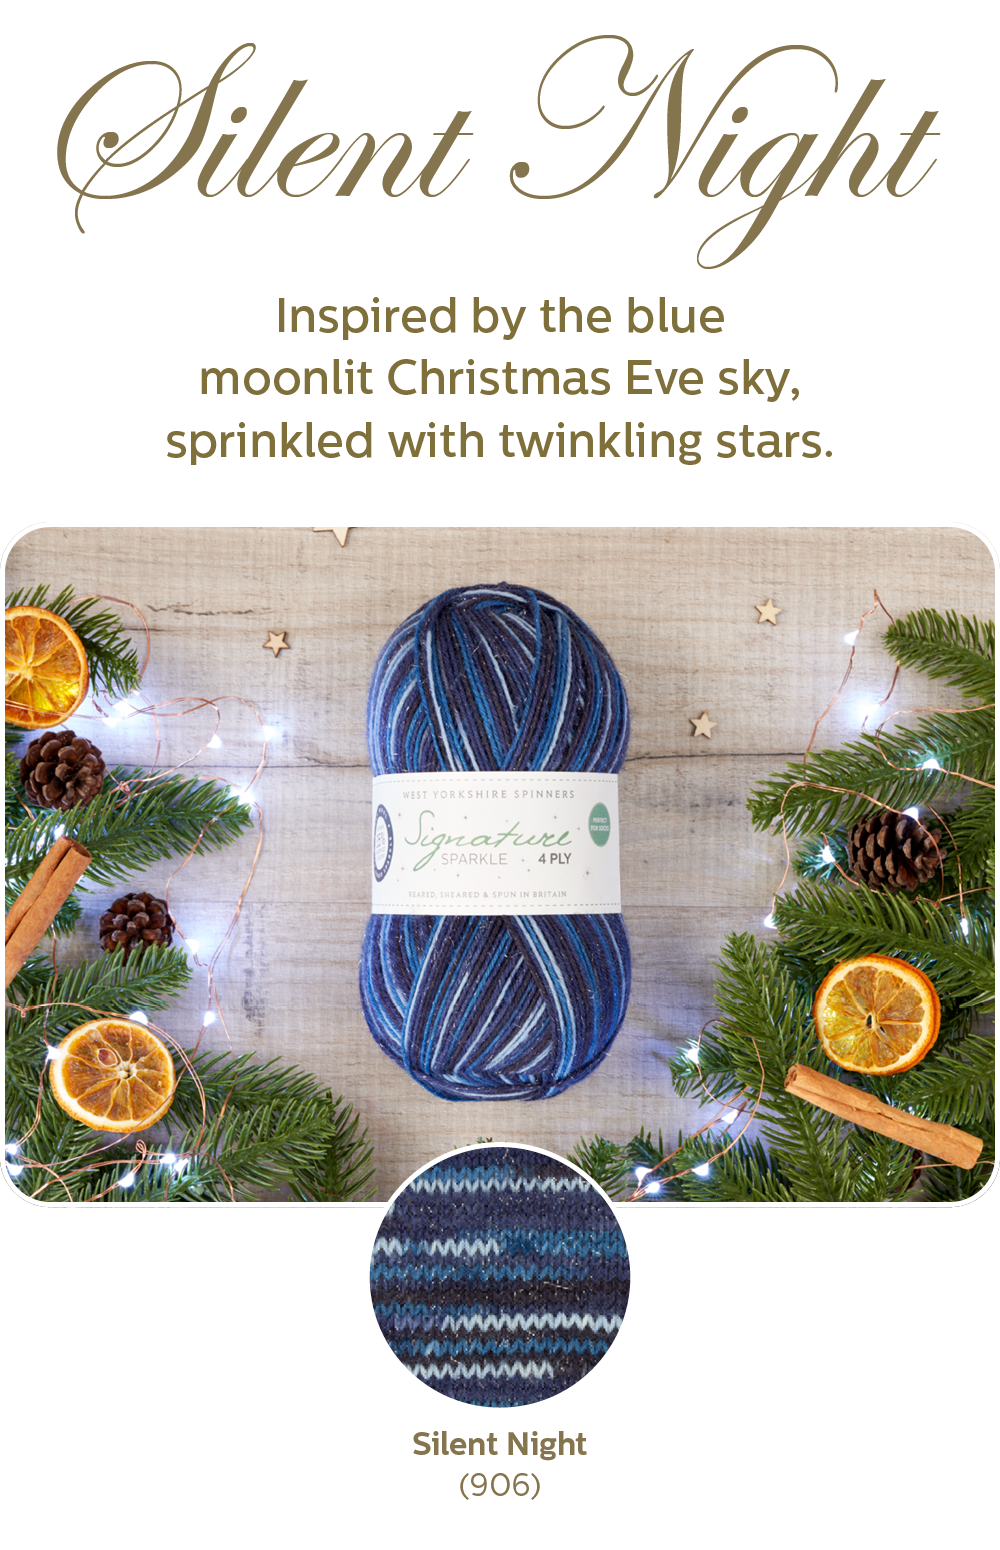 Signature 4-ply sparkle in Silent Night from West Yorkshire Spinners